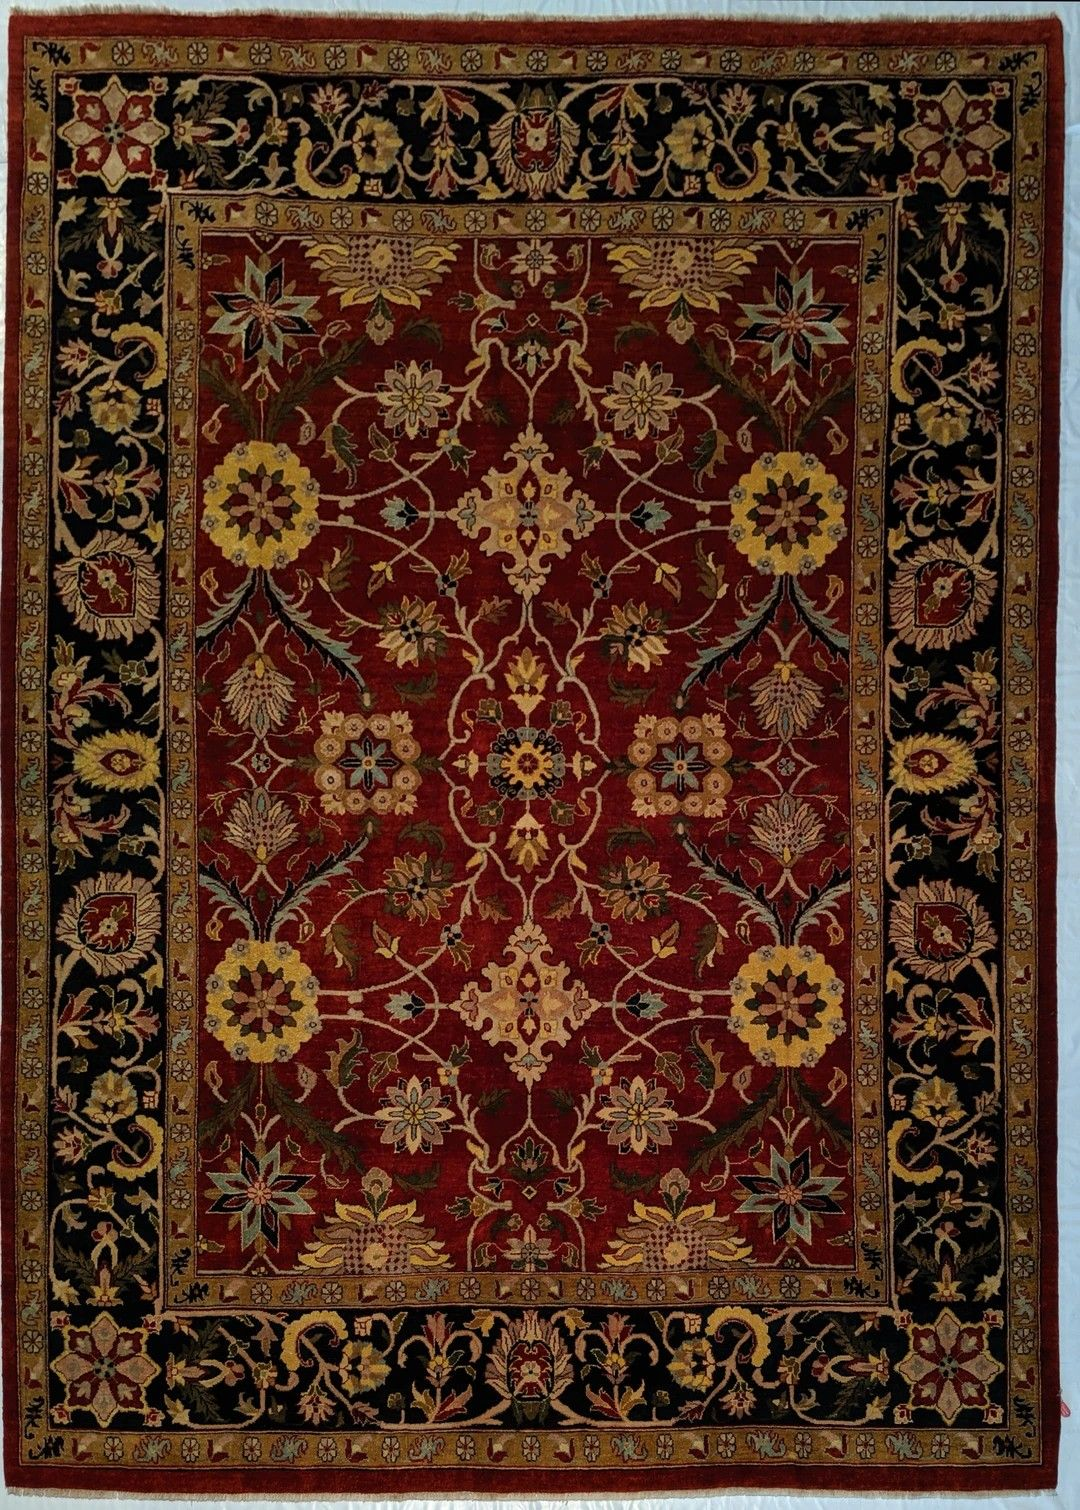 Pin By Bestrugplace Handmade Rugs At On 9x12 Handmade Rugs Clearance Sale On 9 X 12 Carpet 9x11 Rugs 8x12 Rugs In 2020 9x12 Area Rugs Clearance Rugs Rugs